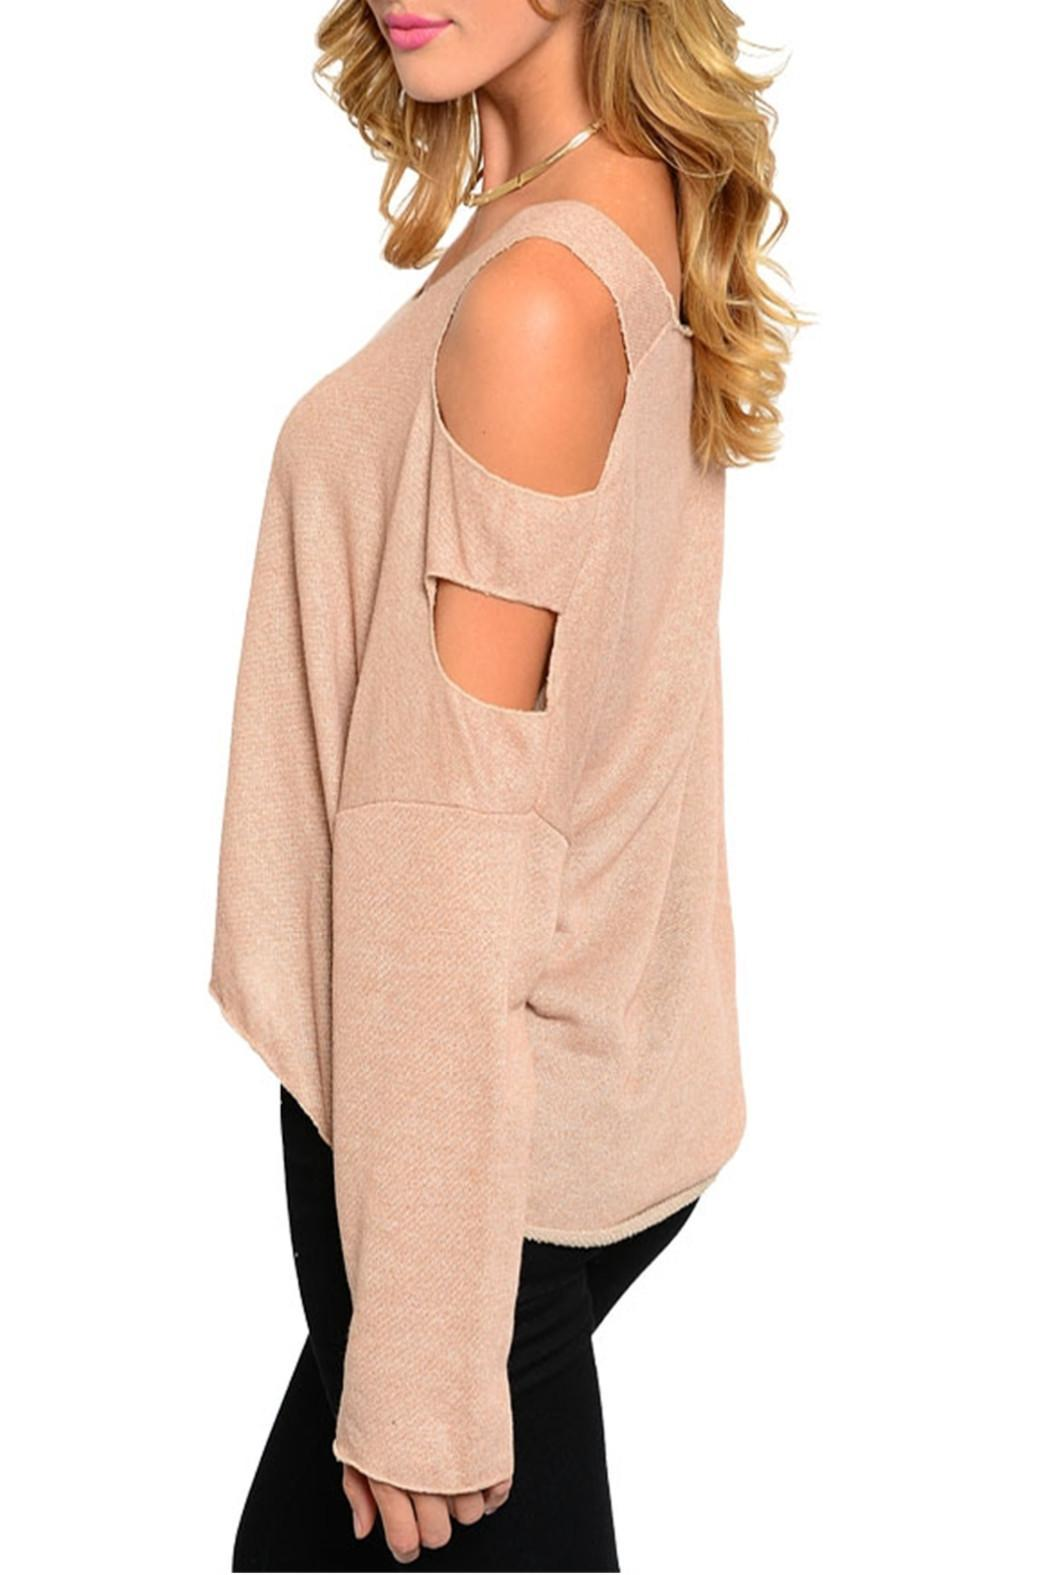 2 Hearts Nude Cutout Top - Front Full Image